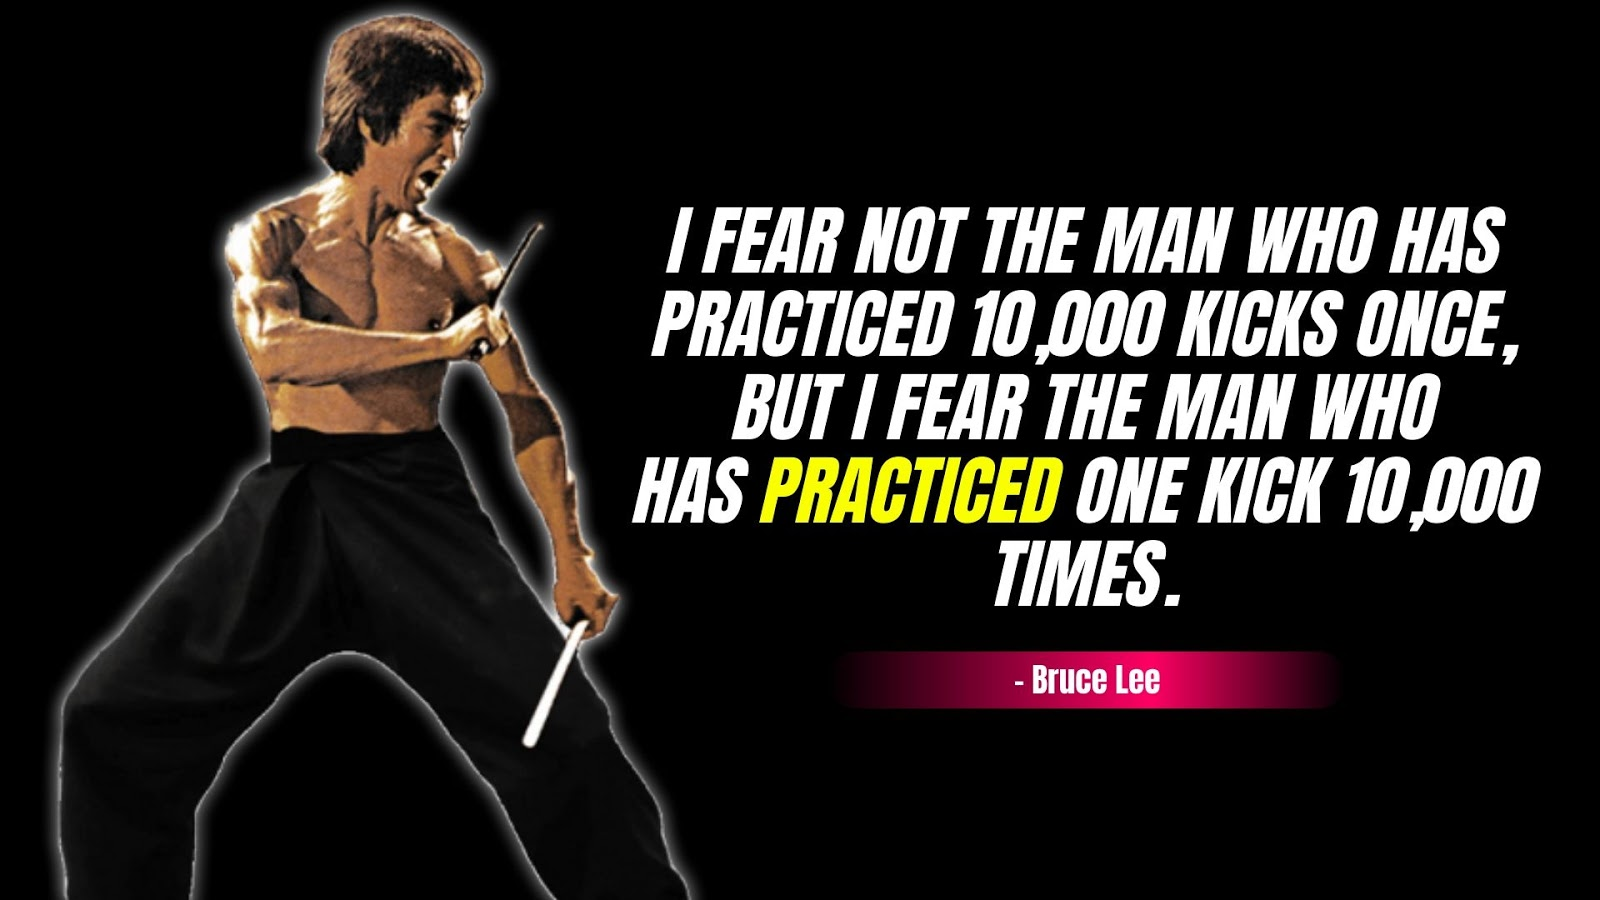 Bruce Lee Quotes about Martial Arts